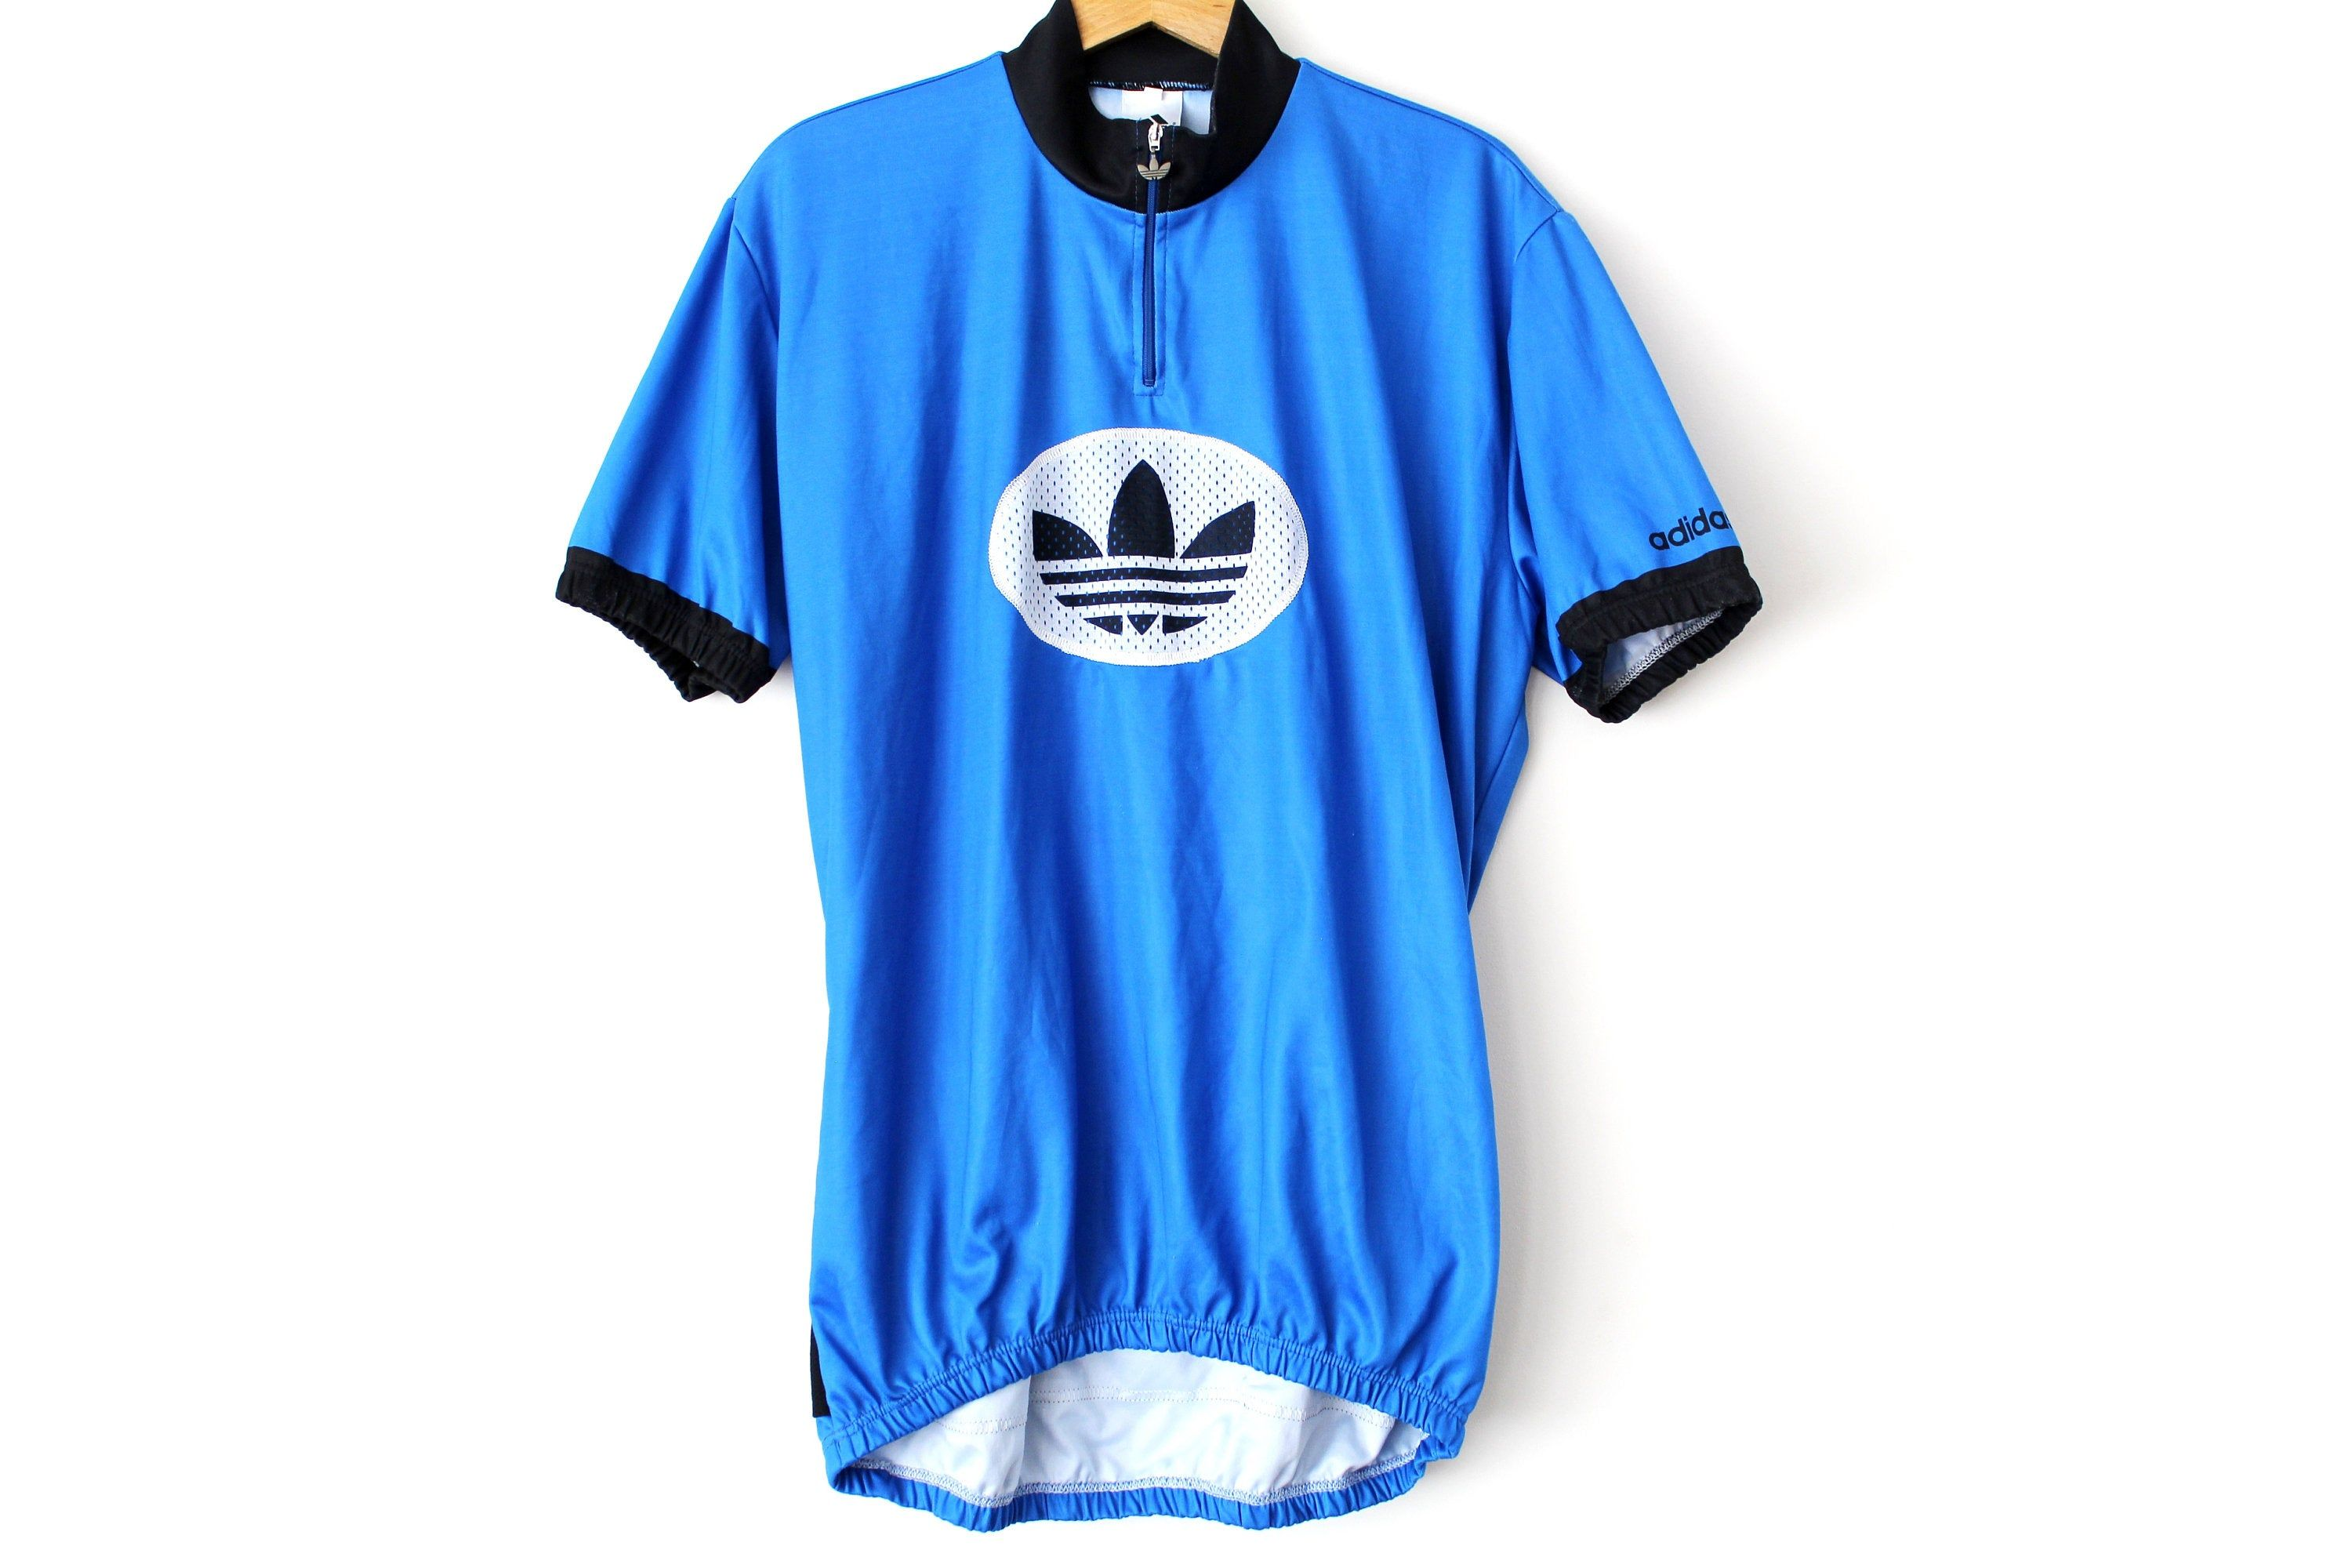 Vintage Adidas Cycling Jersey Made In Italy Bicycle Jersey Cycling Shirt Retro Bike Riding Top Activewear Cyc Cycling Shirt Vintage Adidas Cycling Jersey [ 2000 x 3000 Pixel ]